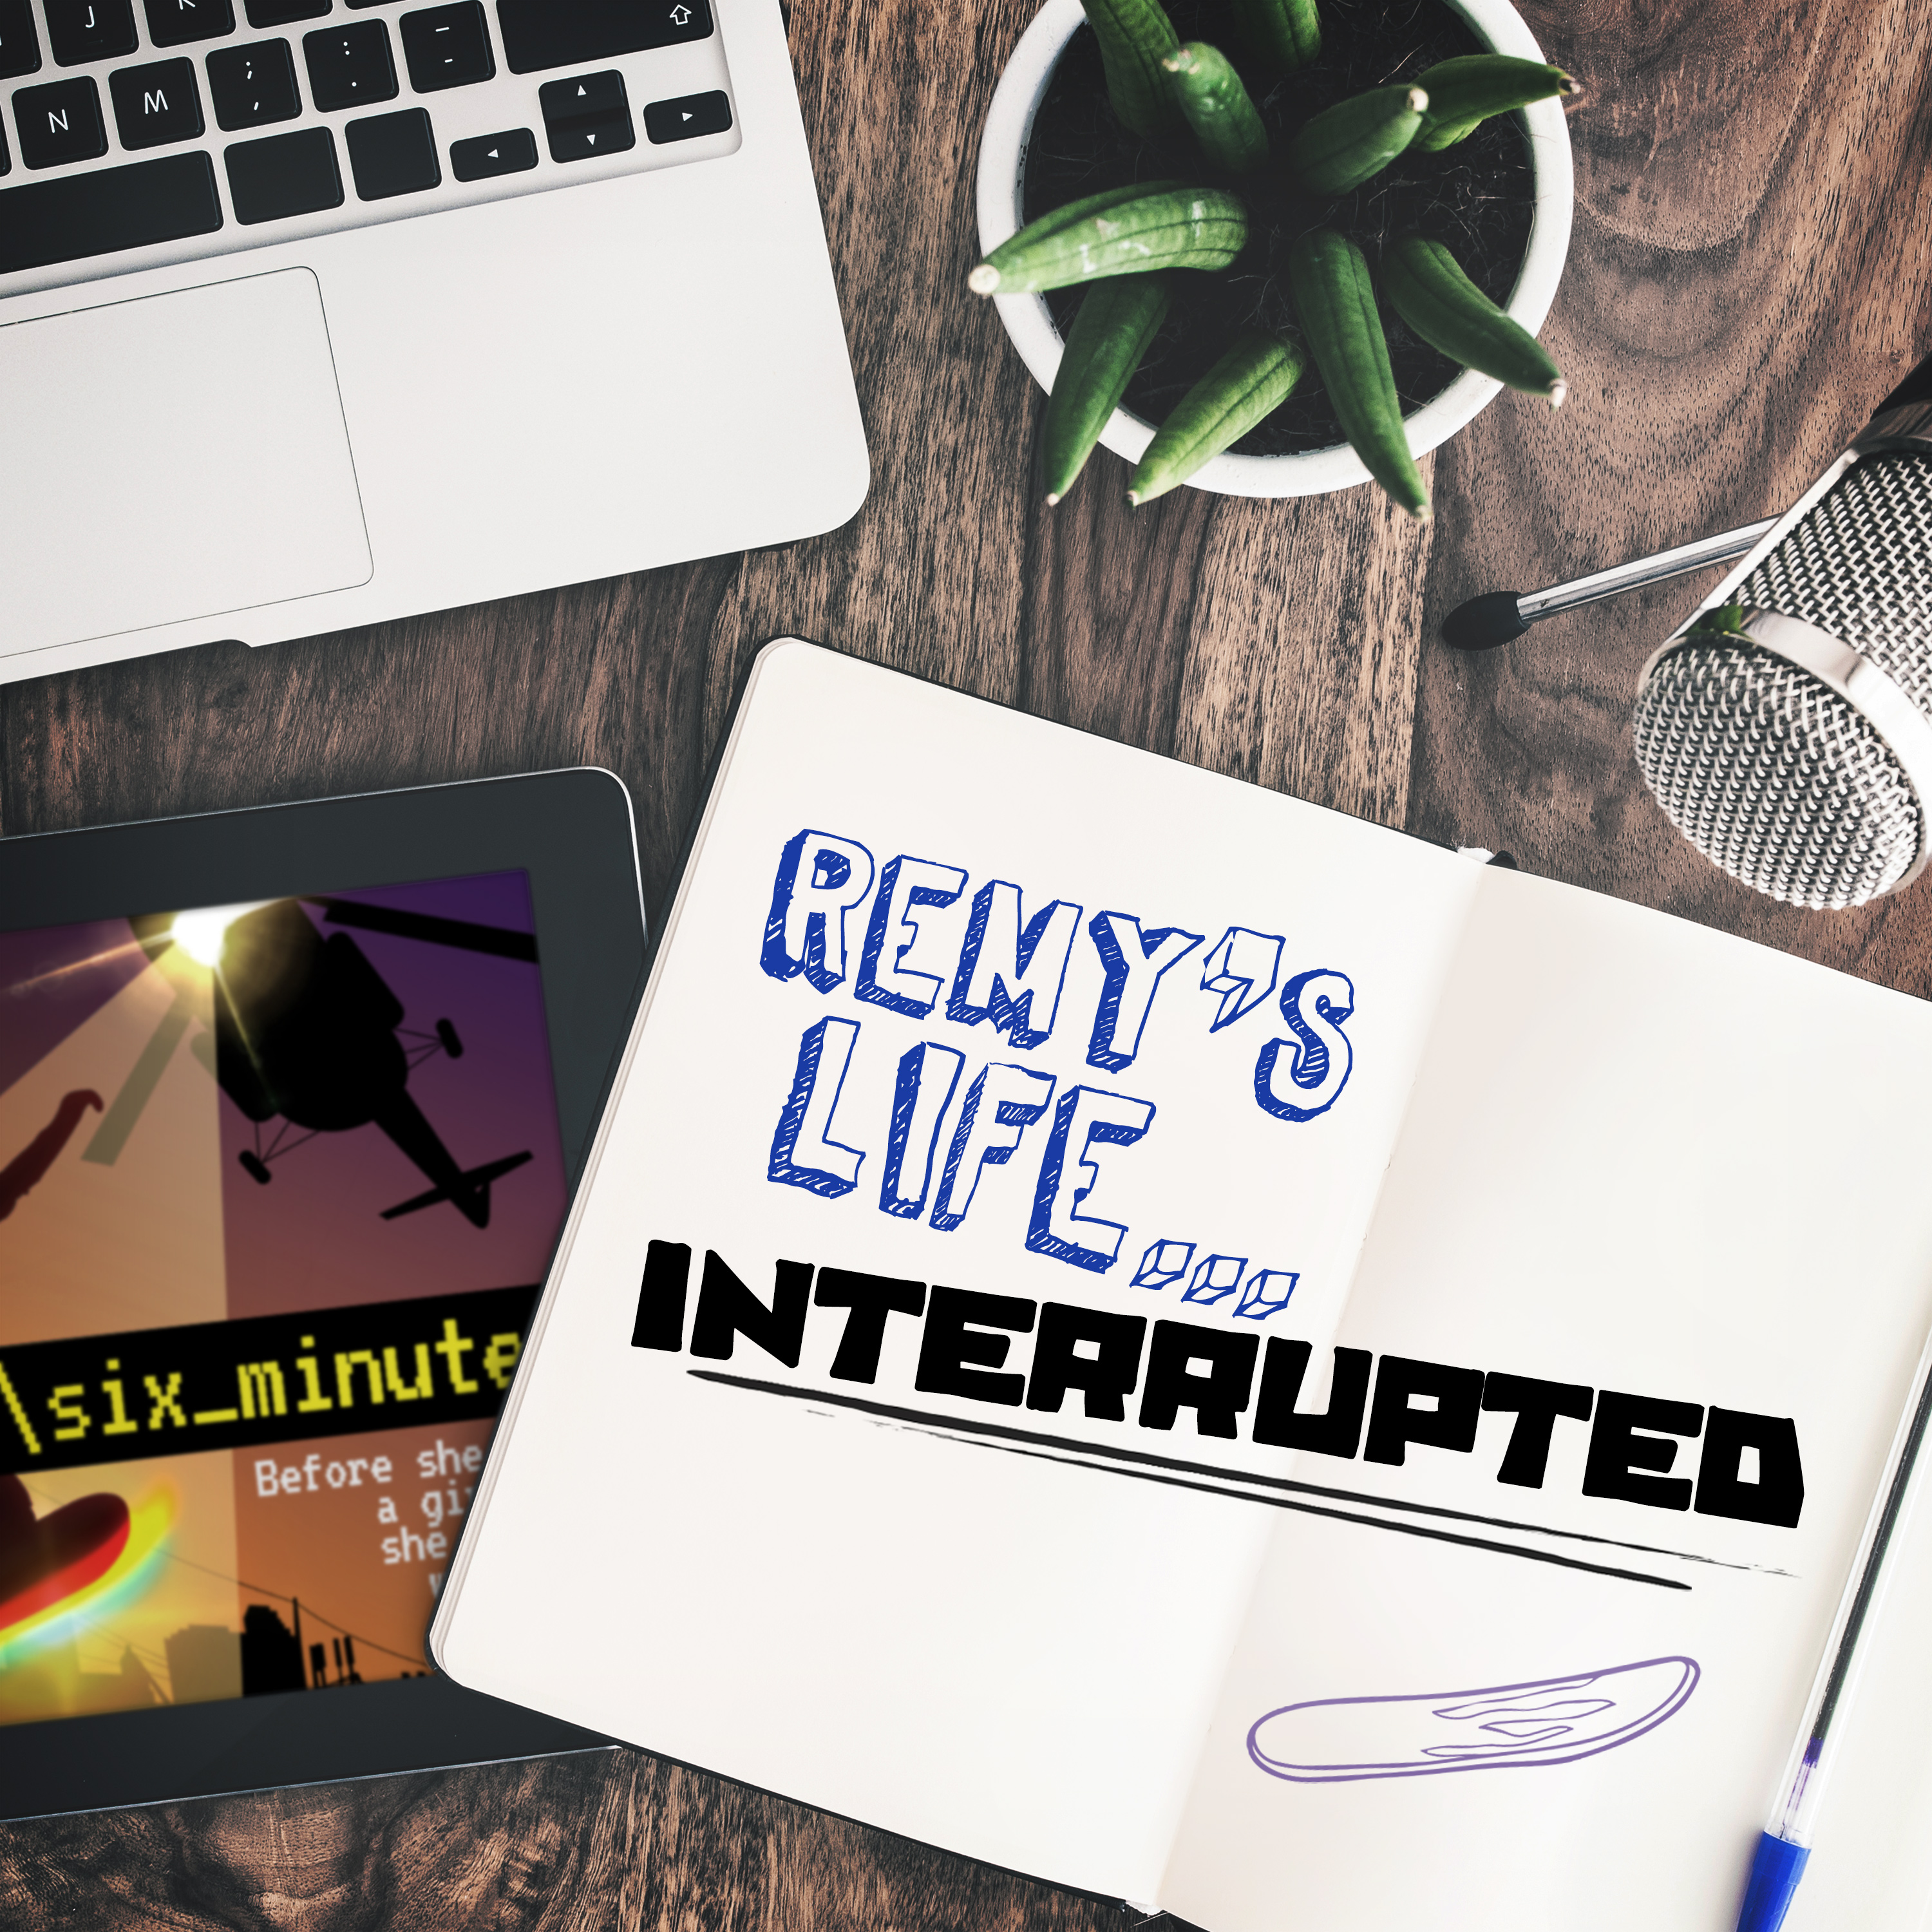 Remy's Life Interrupted: EP79